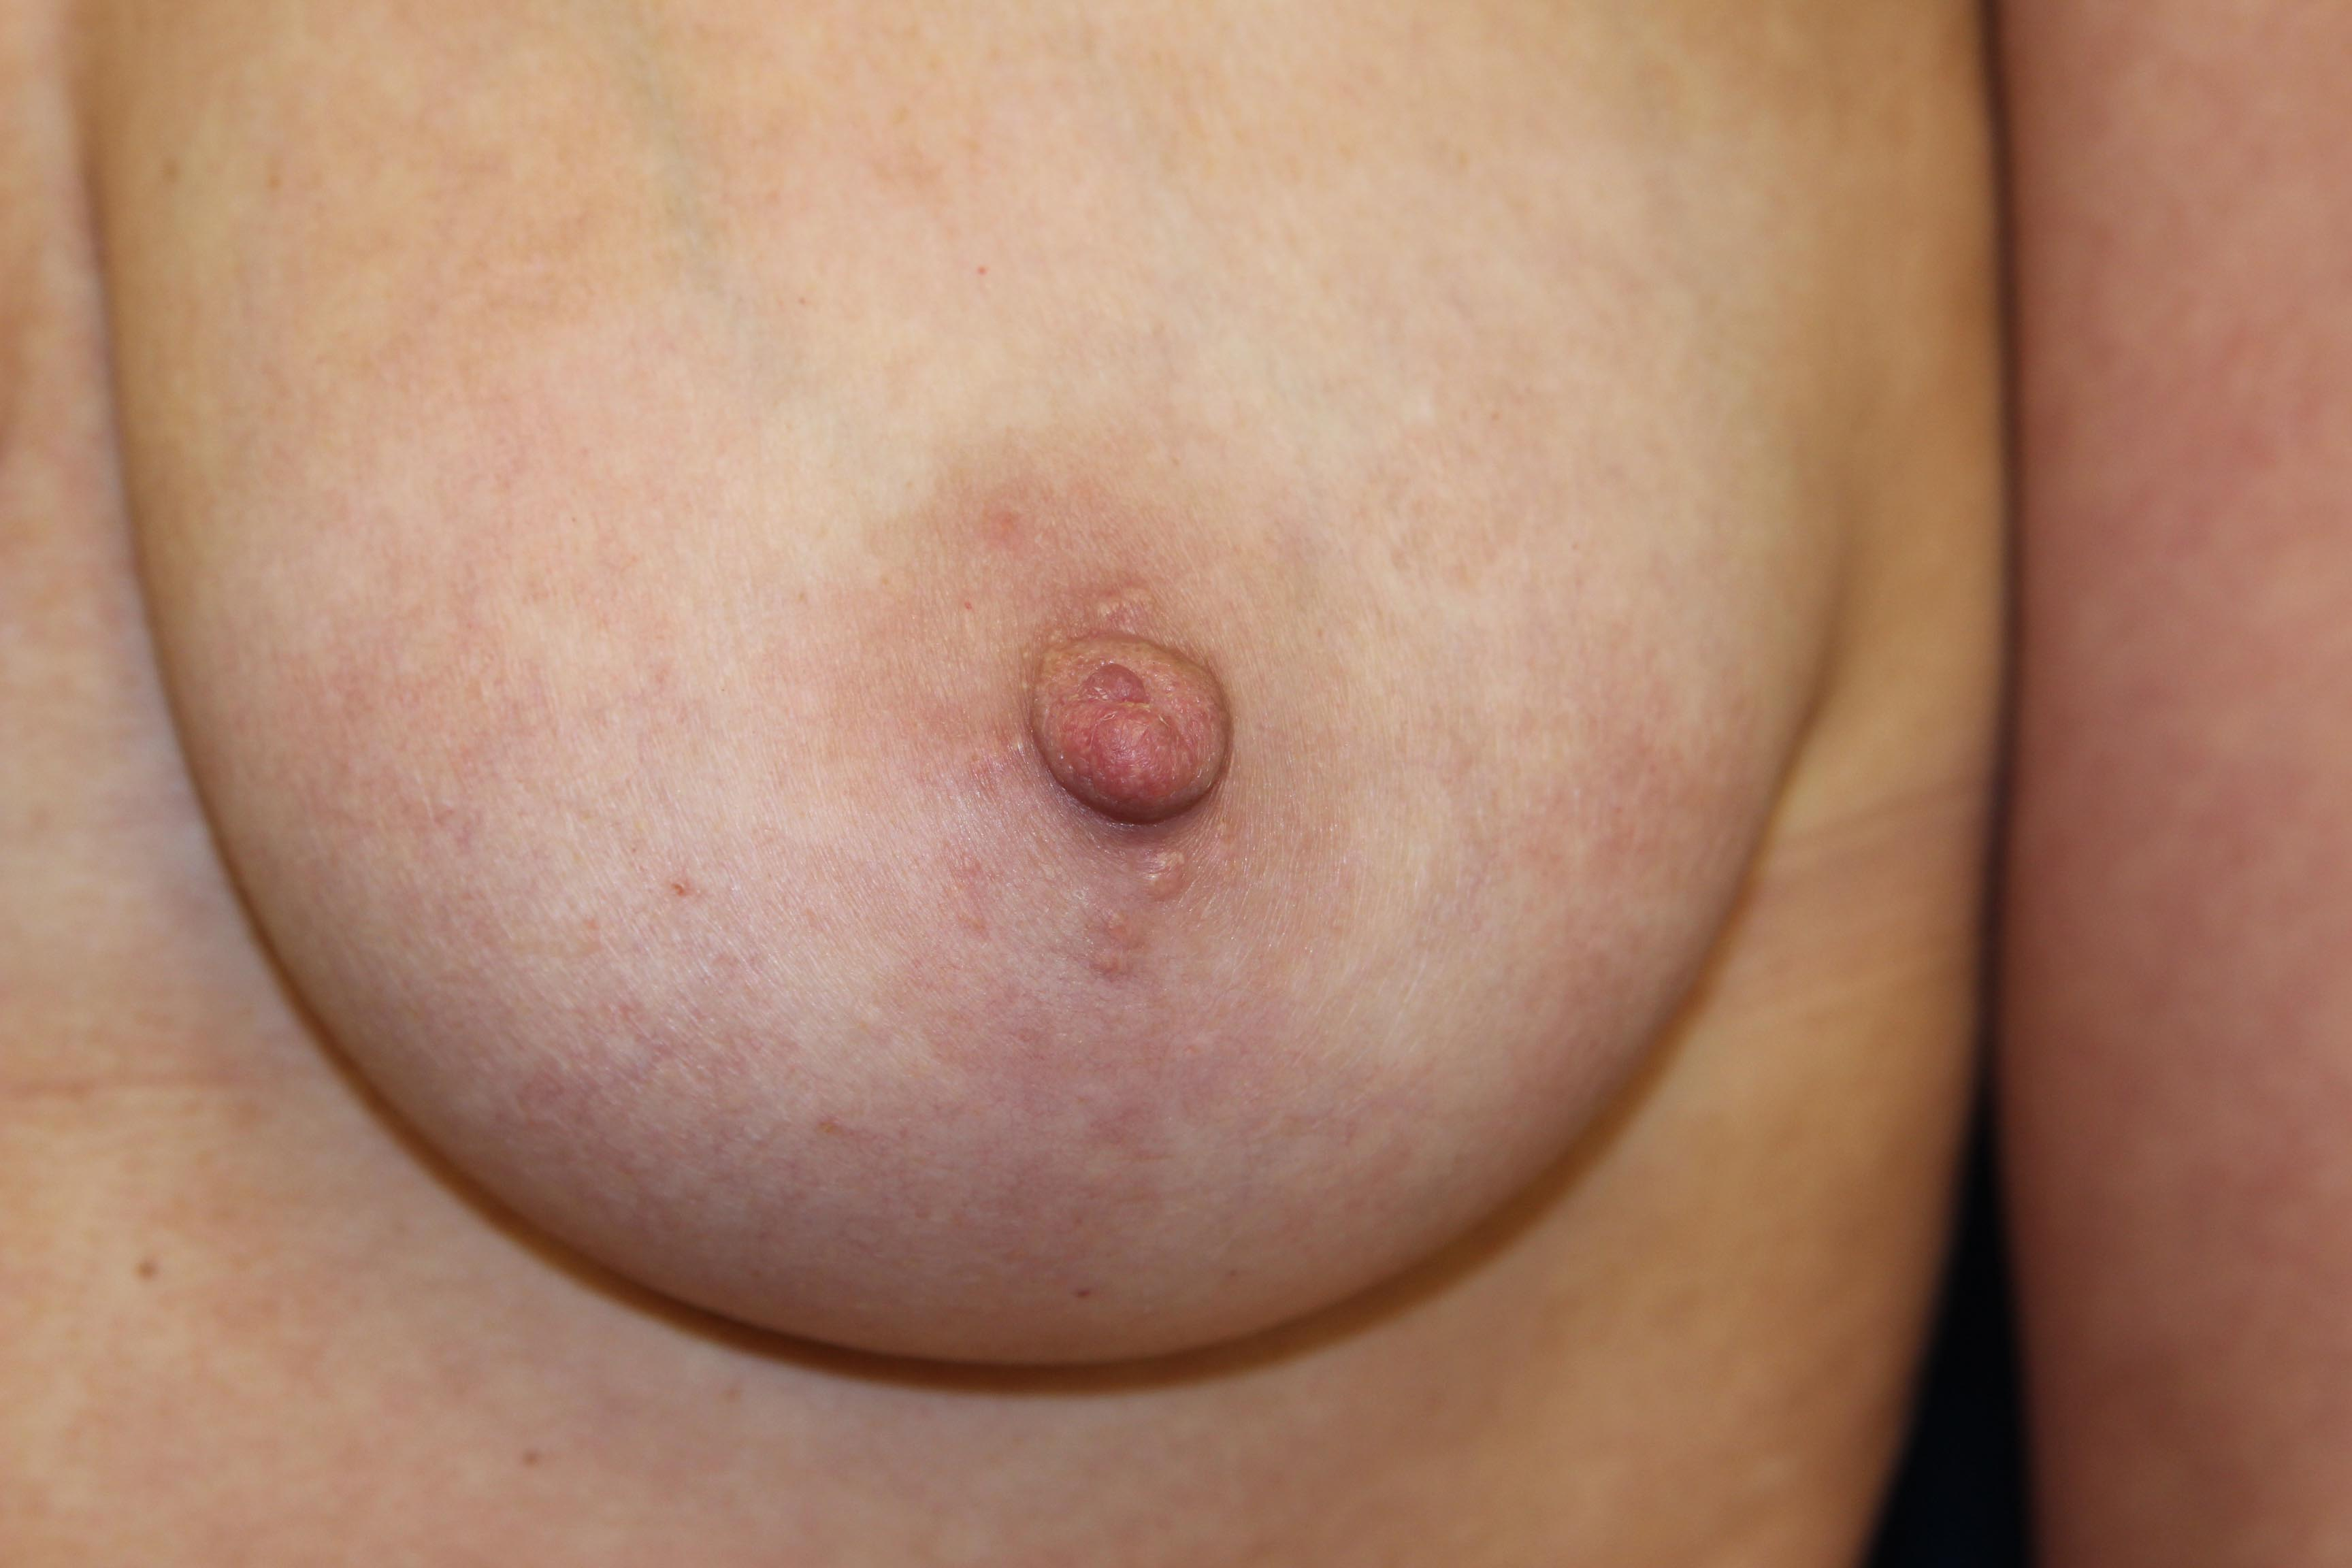 How to correct inverted nipples and what are the causes